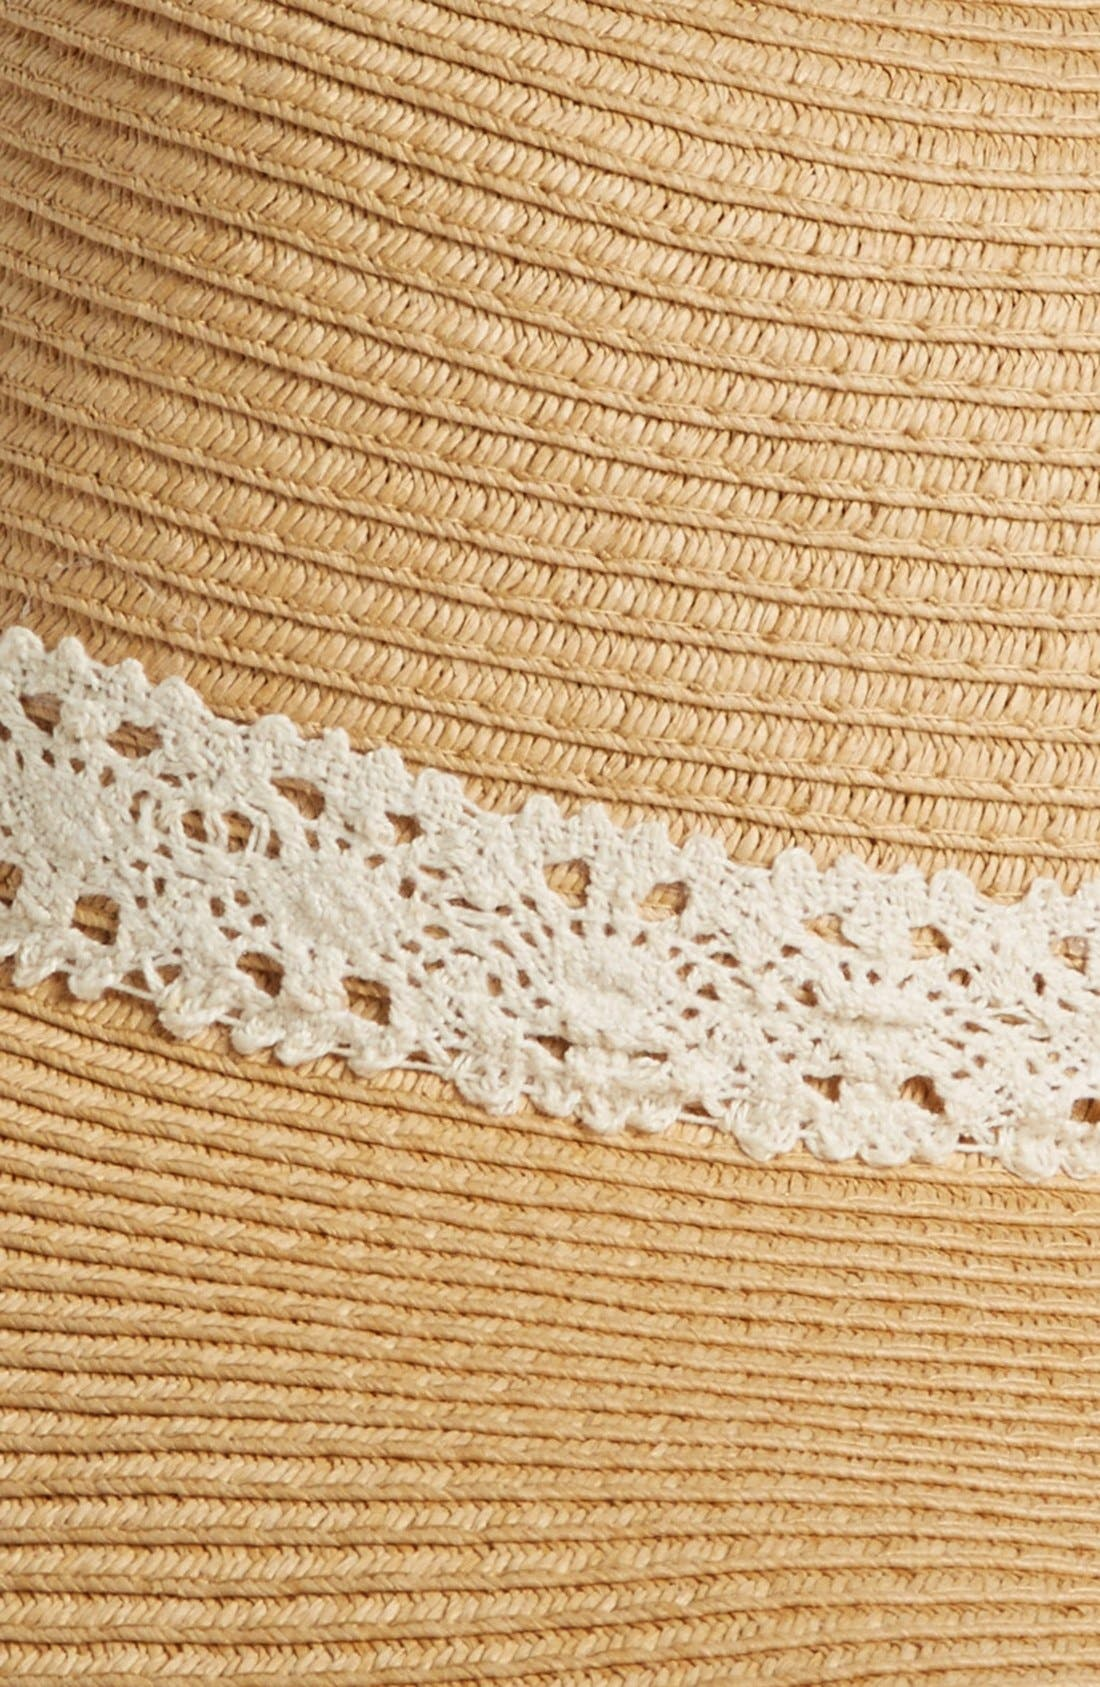 Alternate Image 2  - Amici Accessories Crochet Band Floppy Straw Hat